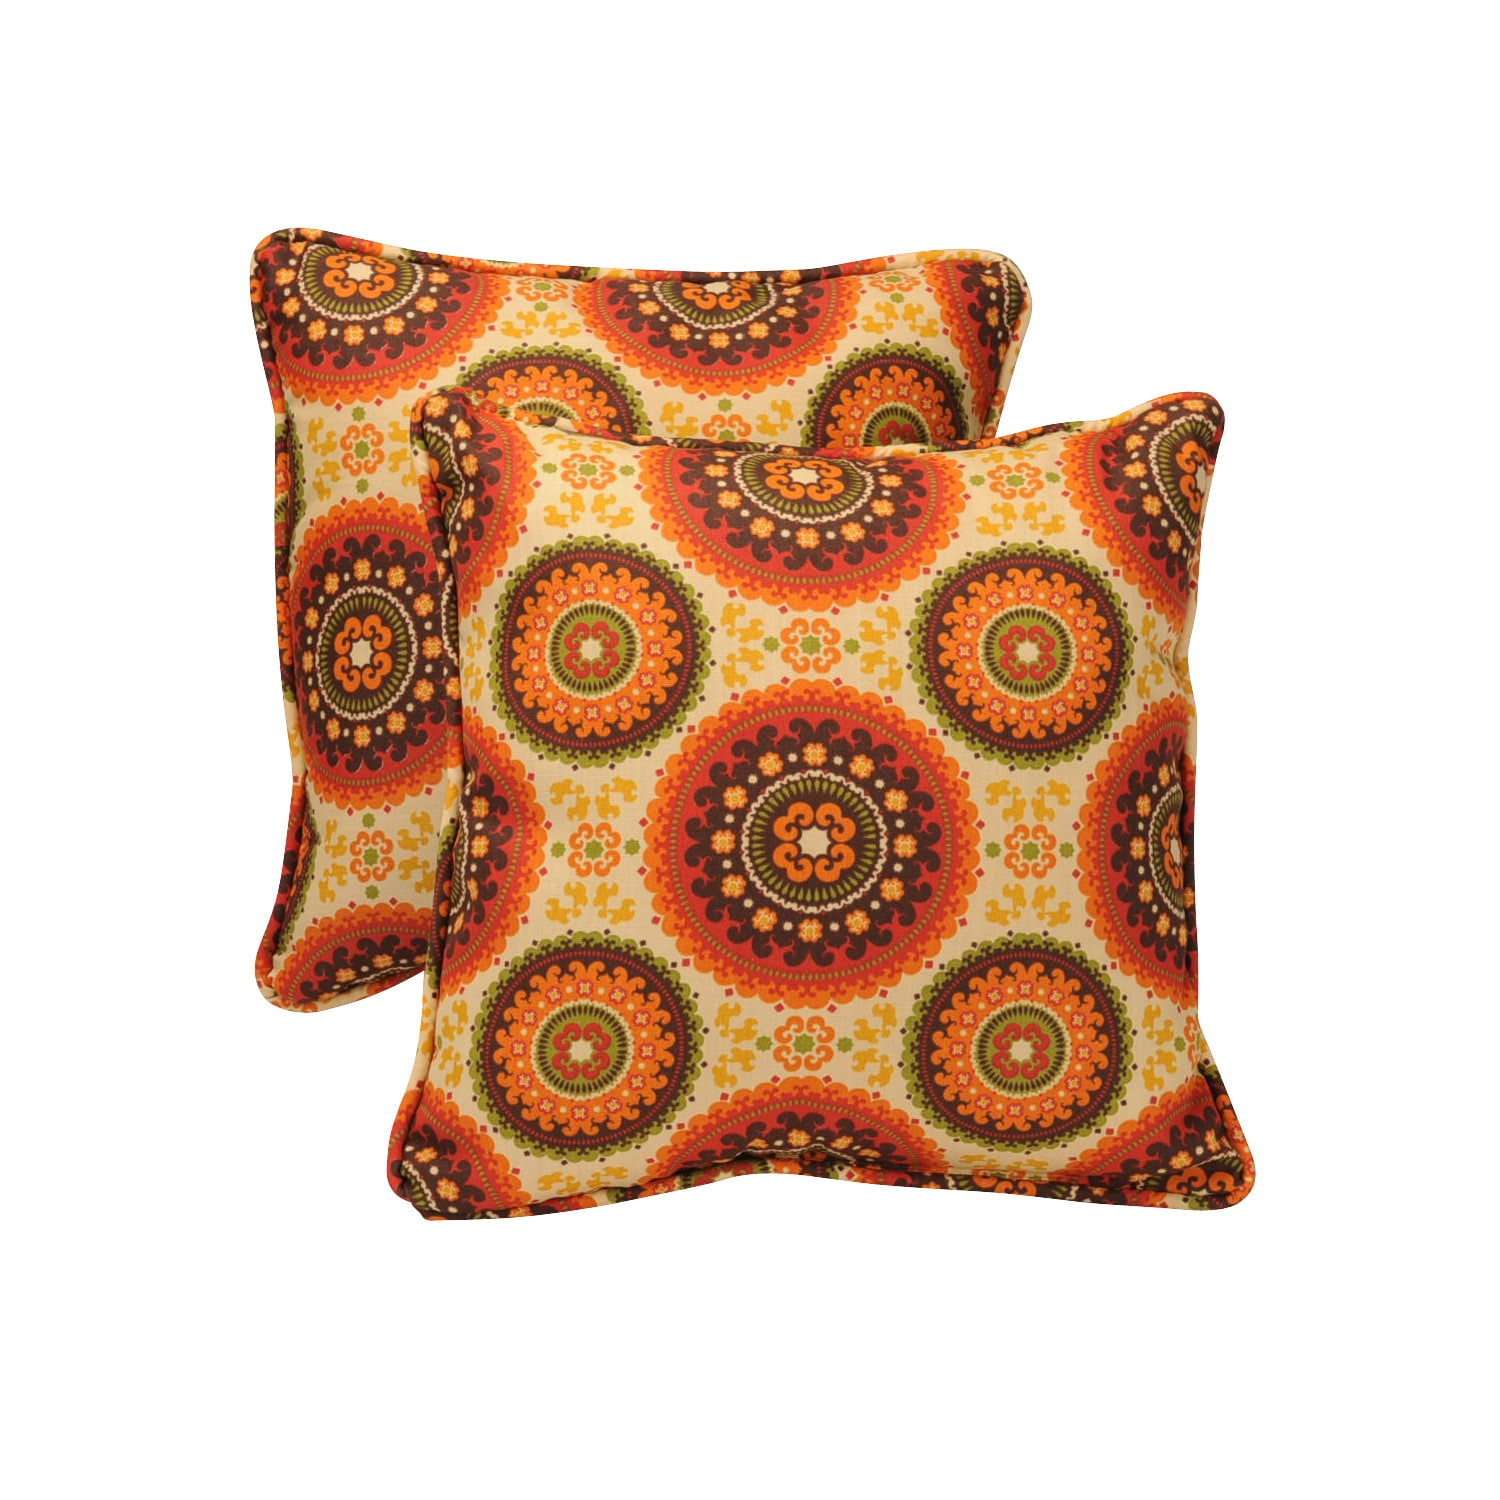 Pillow Perfect Outdoor Brown/ Orange Circles Toss Pillows (Set of 2)